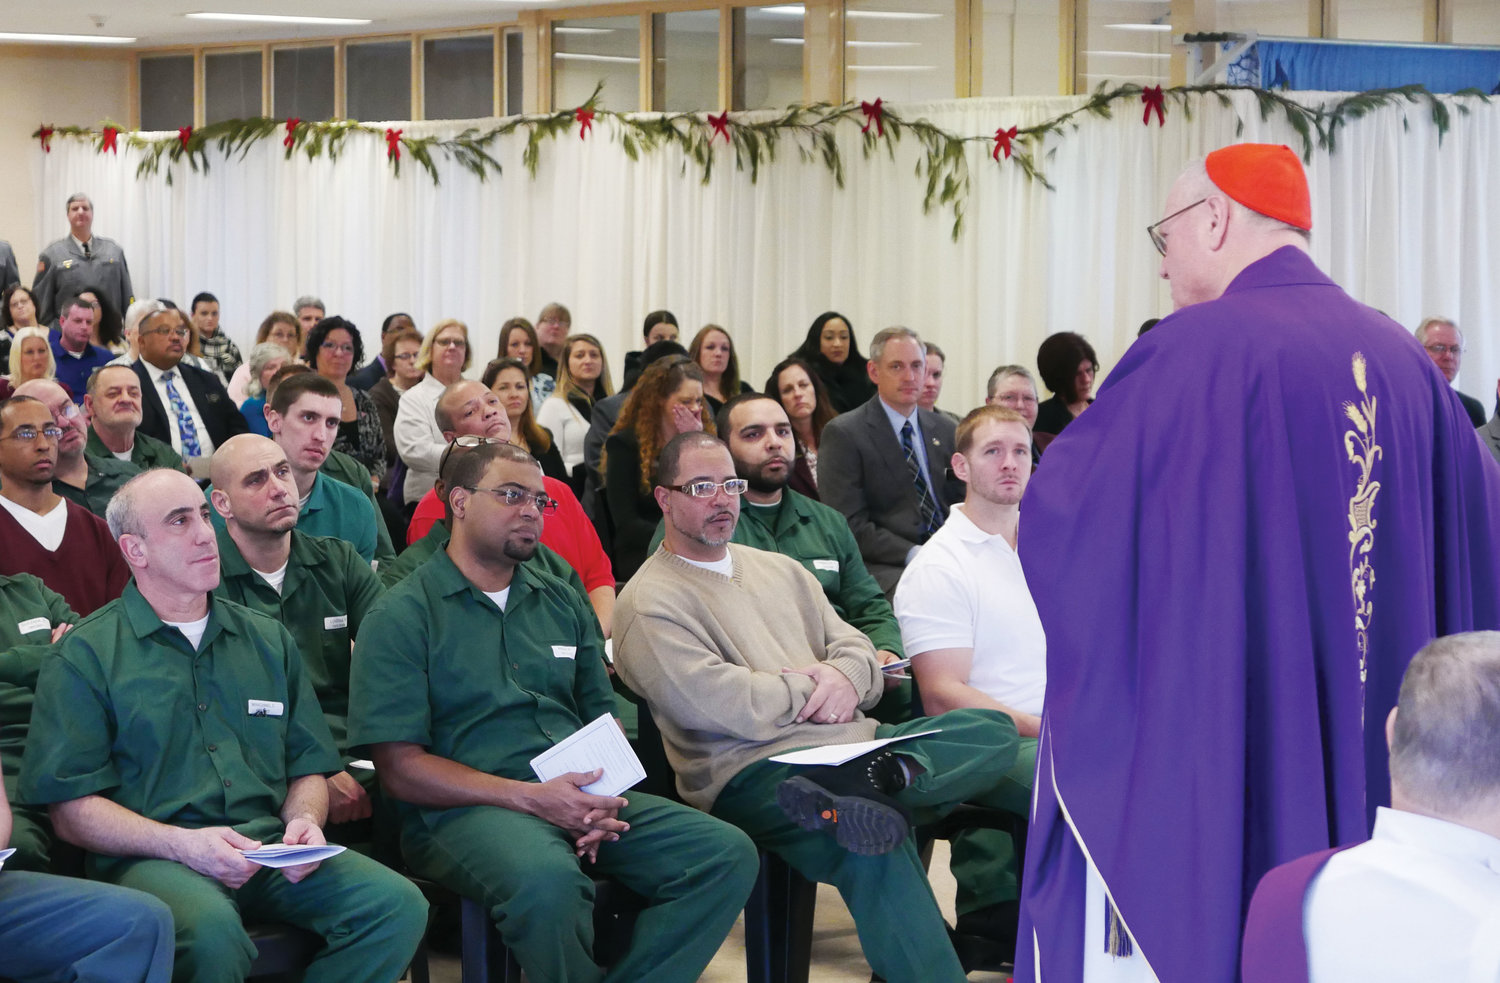 Cardinal Dolan speaks during a Mass for Christmas he celebrated for 60 inmates and staff members at Ulster Correctional Facility, a medium-security state prison housing 660 men in Napanoch Dec. 17. Twenty percent, or 131, of the inmates are Catholic.